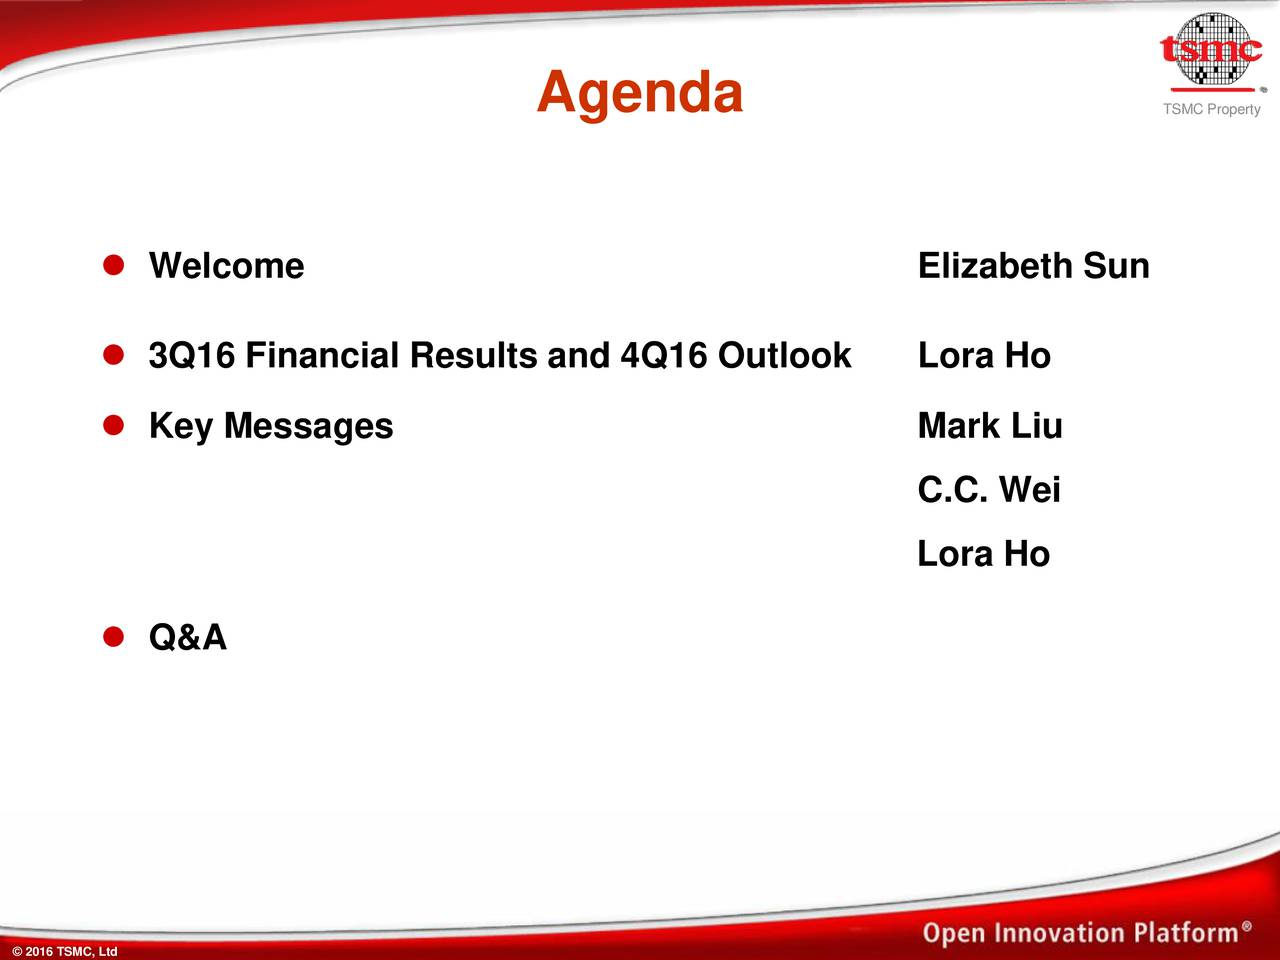 SMCPpeyrtty Welcome Elizabeth Sun 3Q16 Financial Results and 4Q16 Outlook Lora Ho Key Messages Mark Liu C.C. Wei Lora Ho Q&A